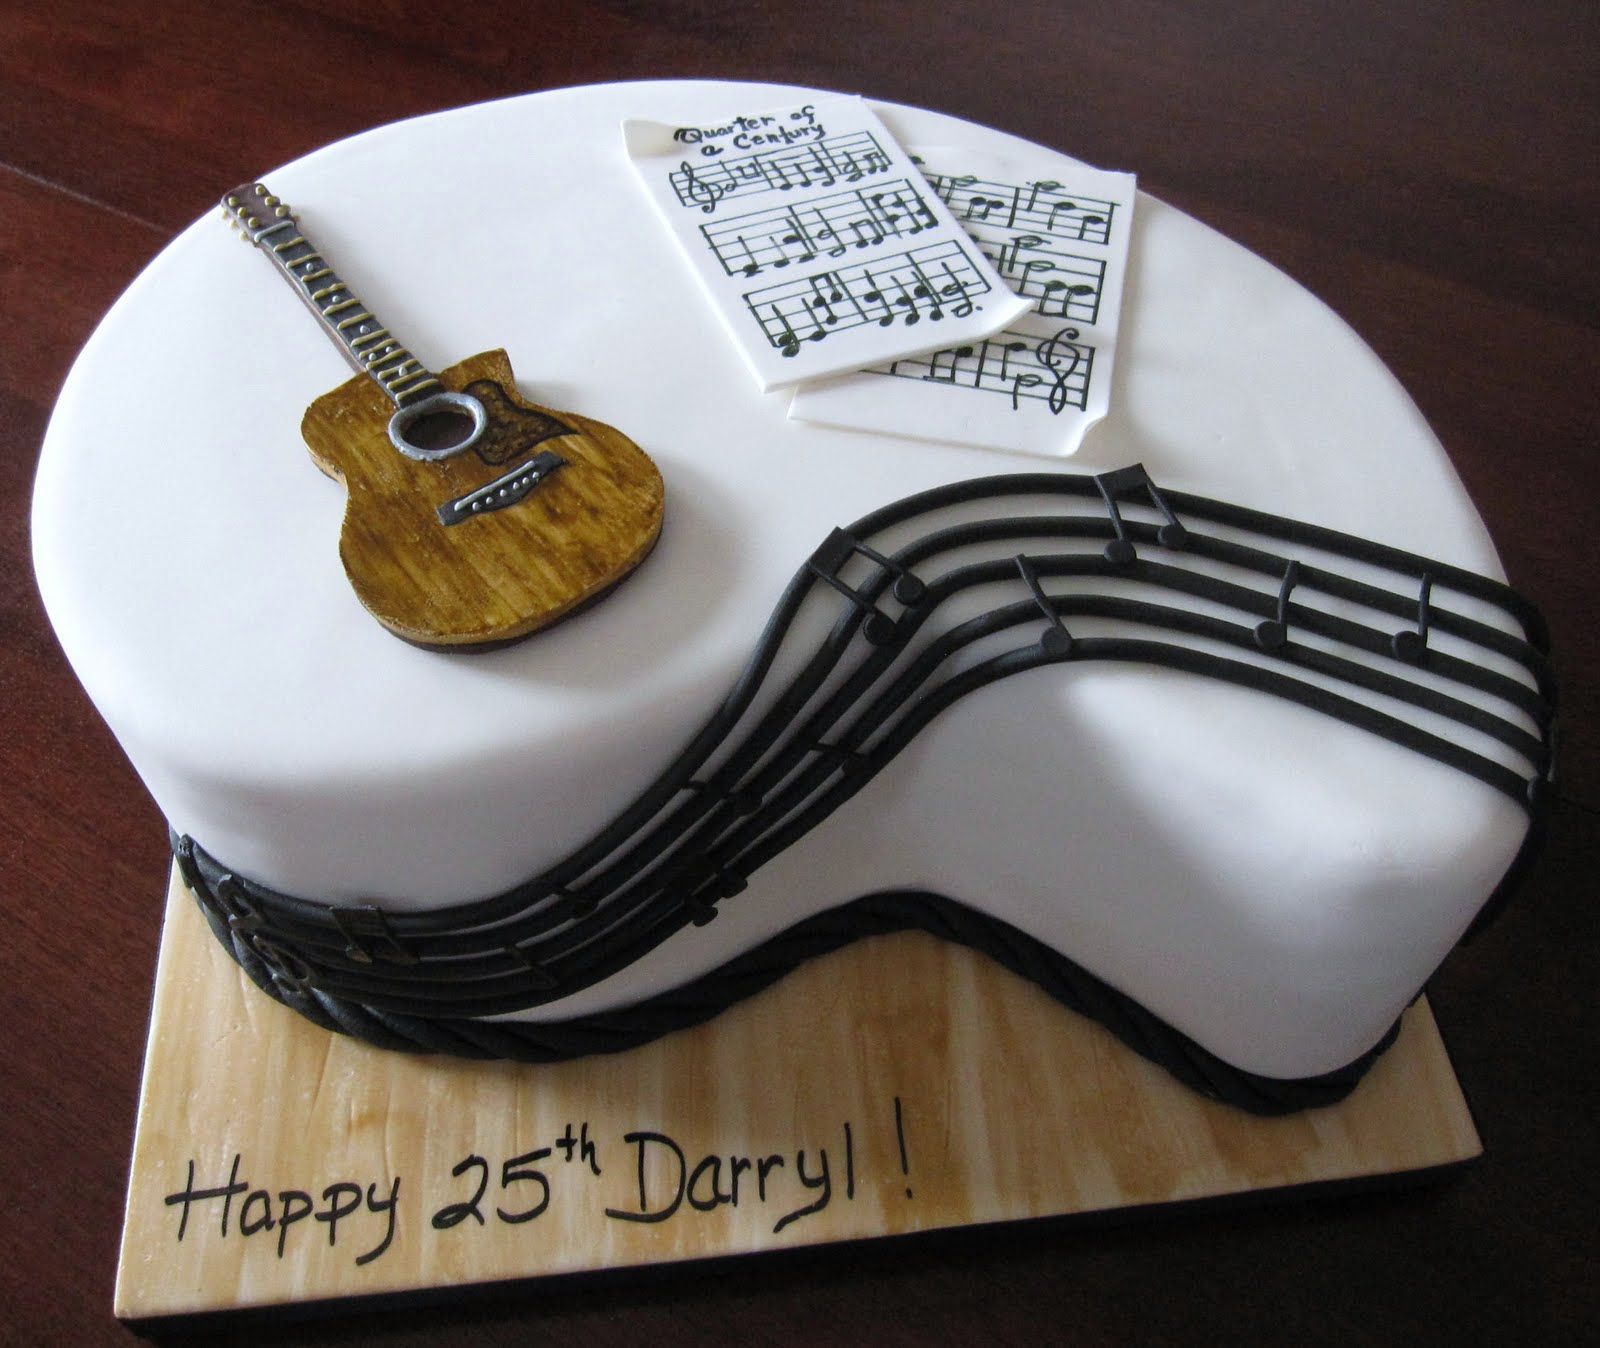 Guitar Cake Images With Name : CakeSavvy: Guitar cake